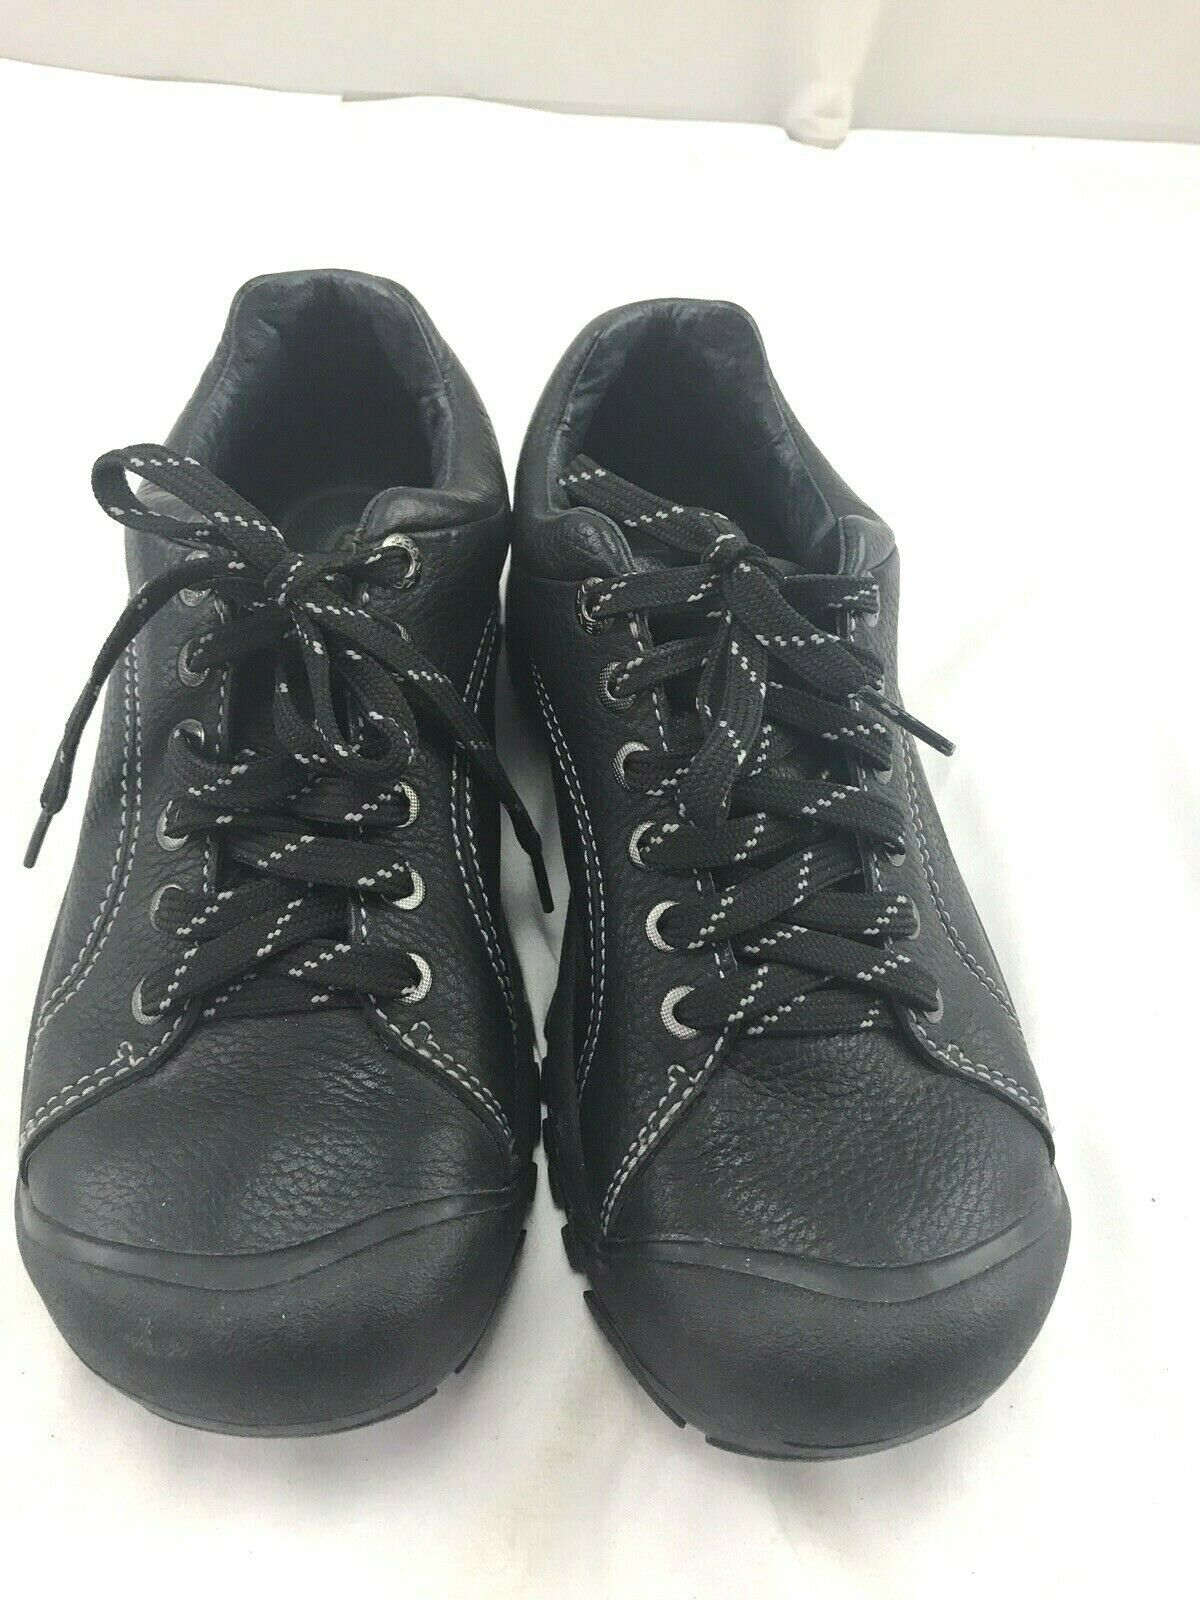 Keen sz 8 black leather tie shoes image 1